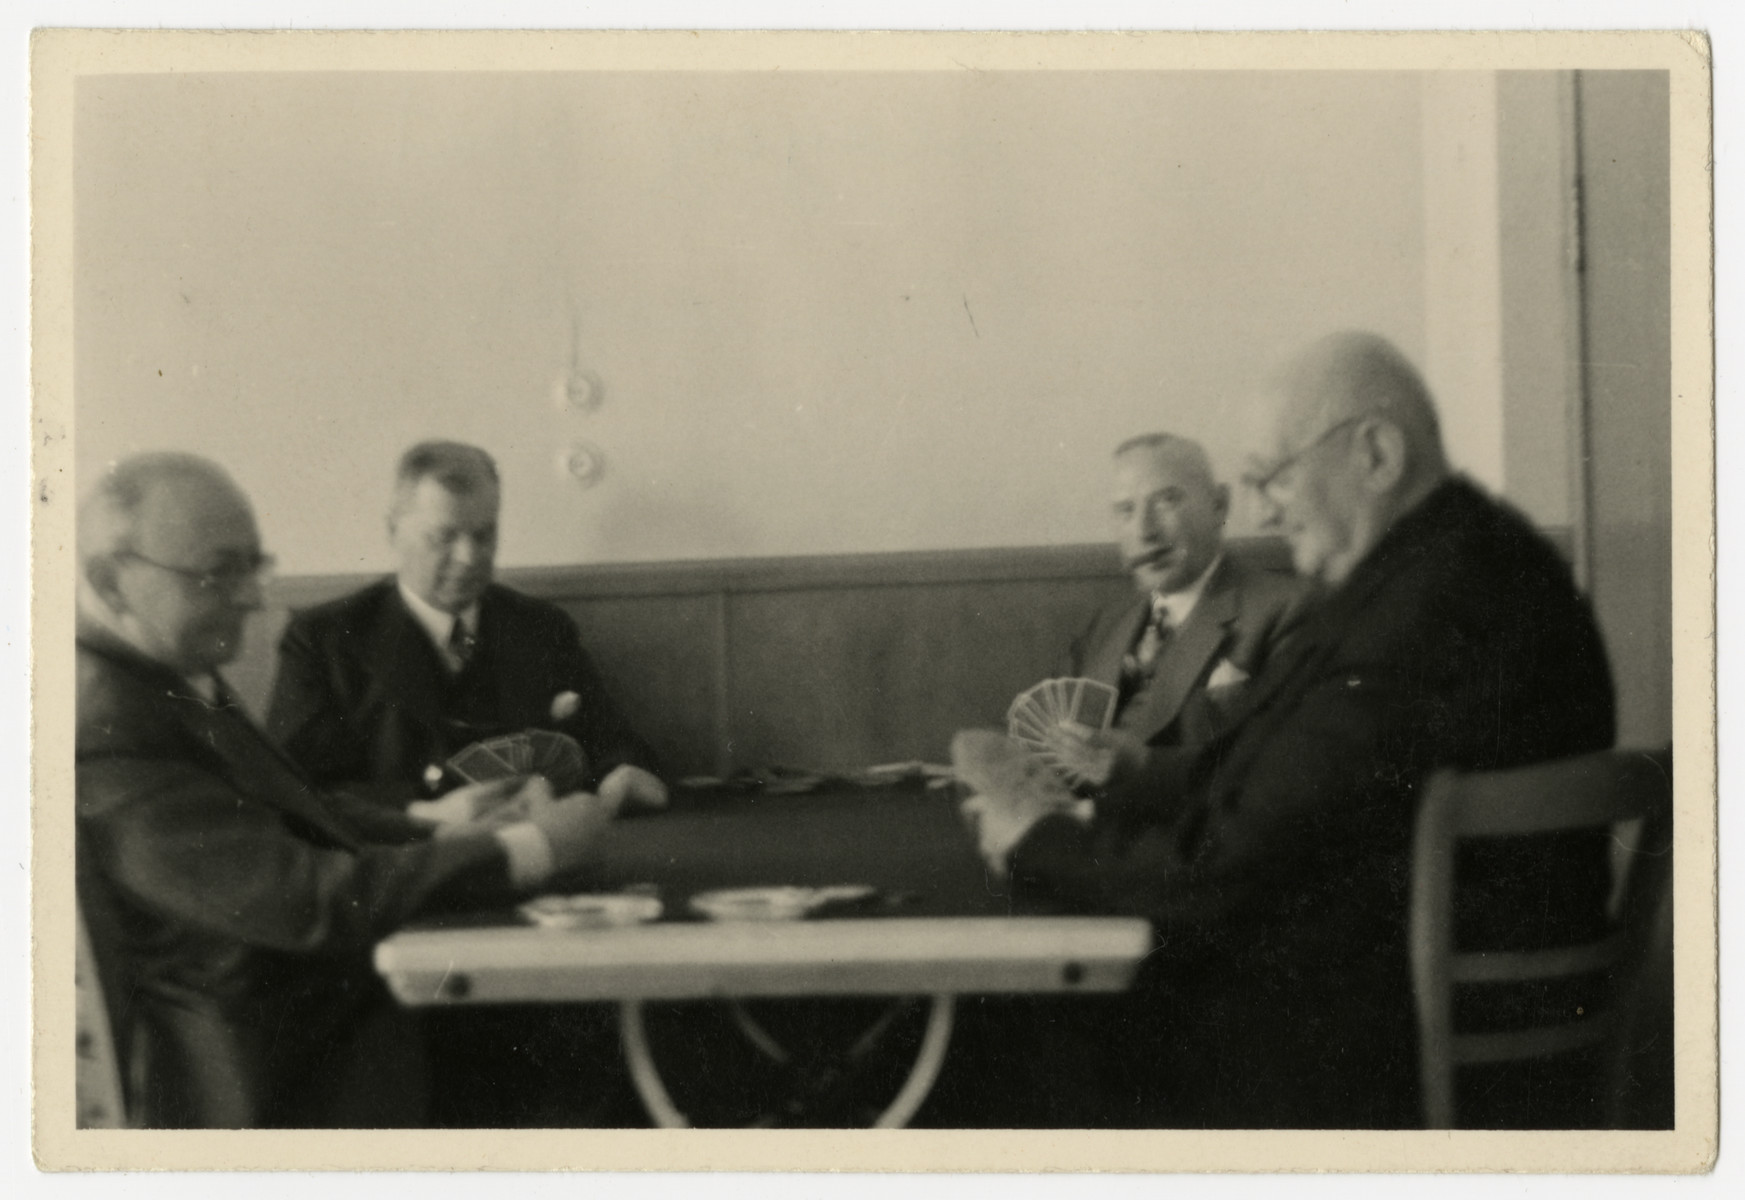 A group of men play a game of cards.  Emil Gundelfinger is second from the right, smoking a cigar.